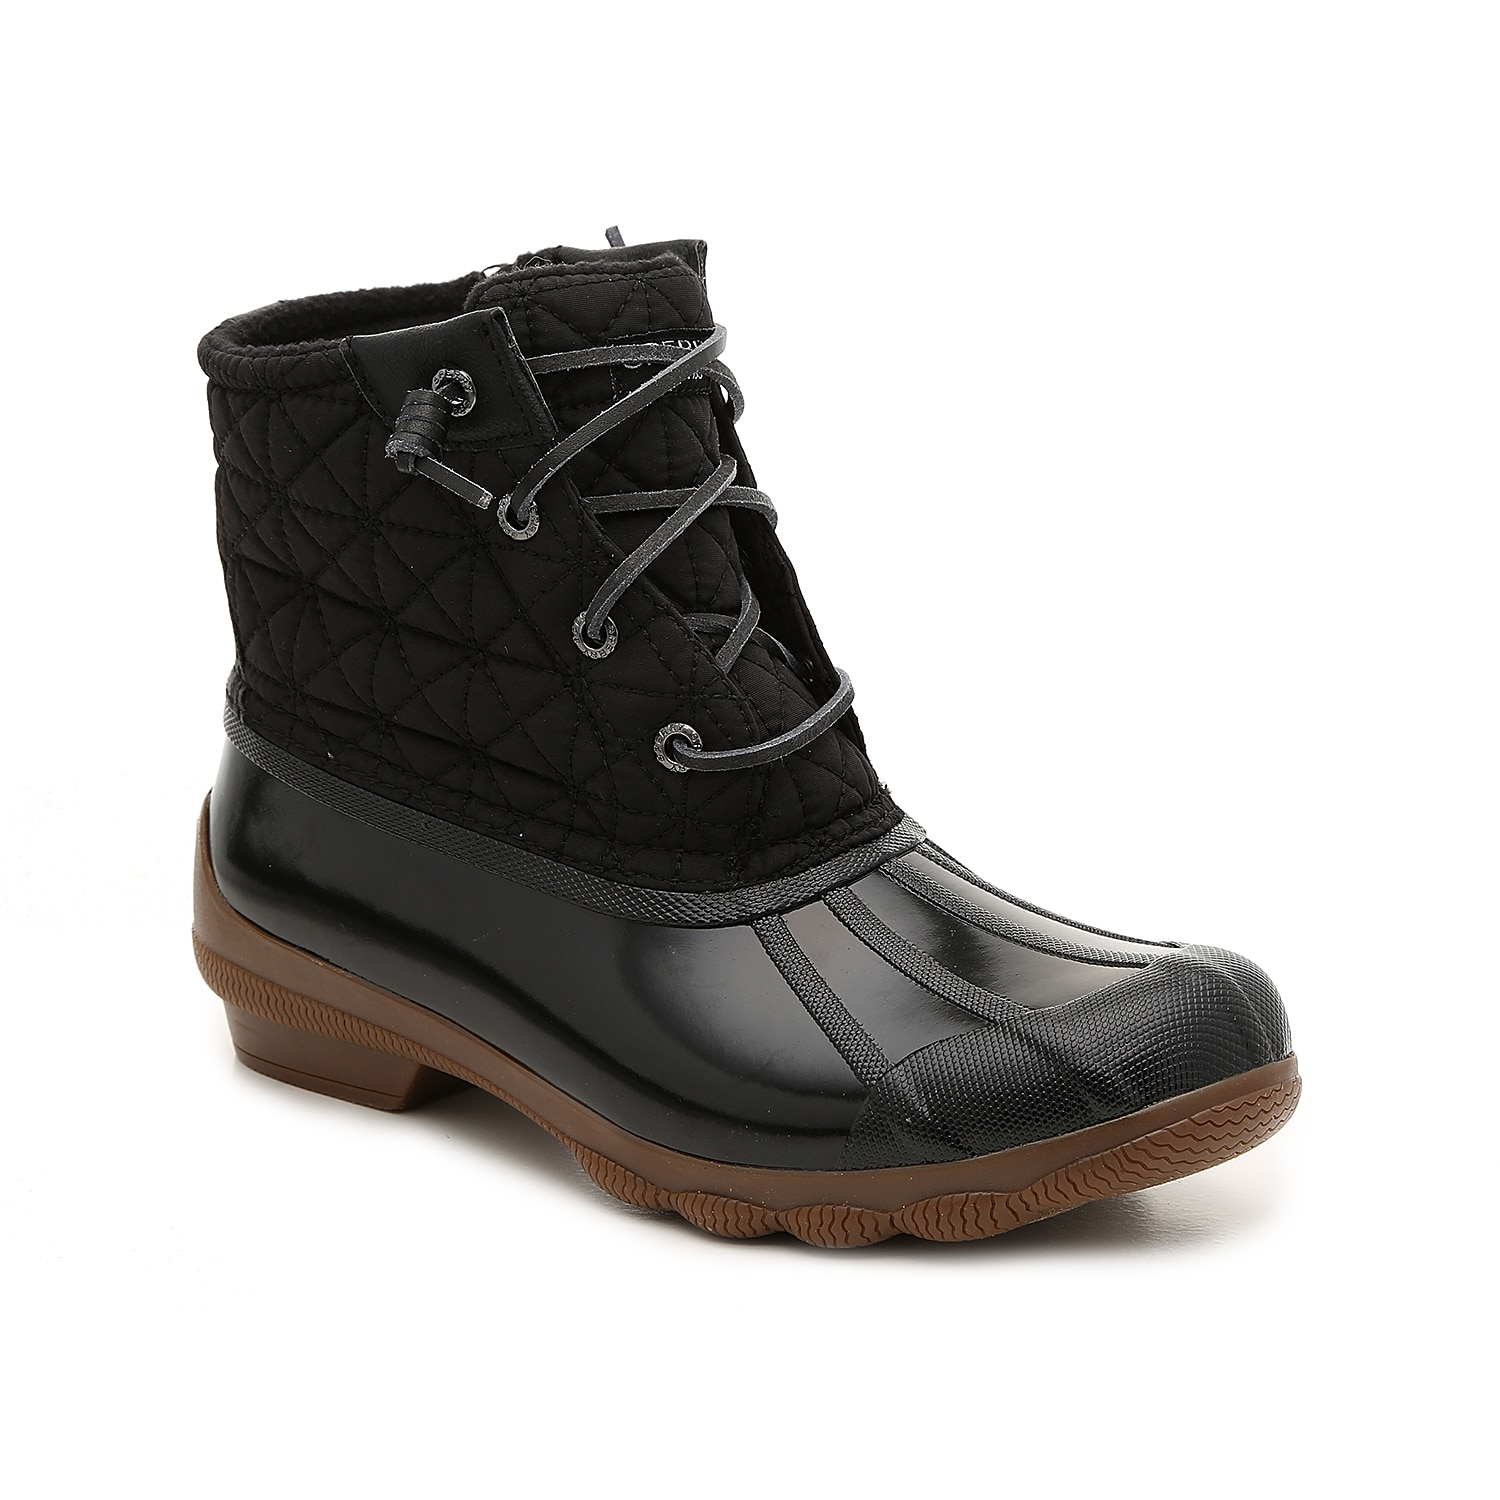 Zip up the Syren Gulf duck boot from Sperry to complete your cold-weather look. These booties feature a warm microfleece lining to keep feet cozy and are finished with a traction sole for steady steps.